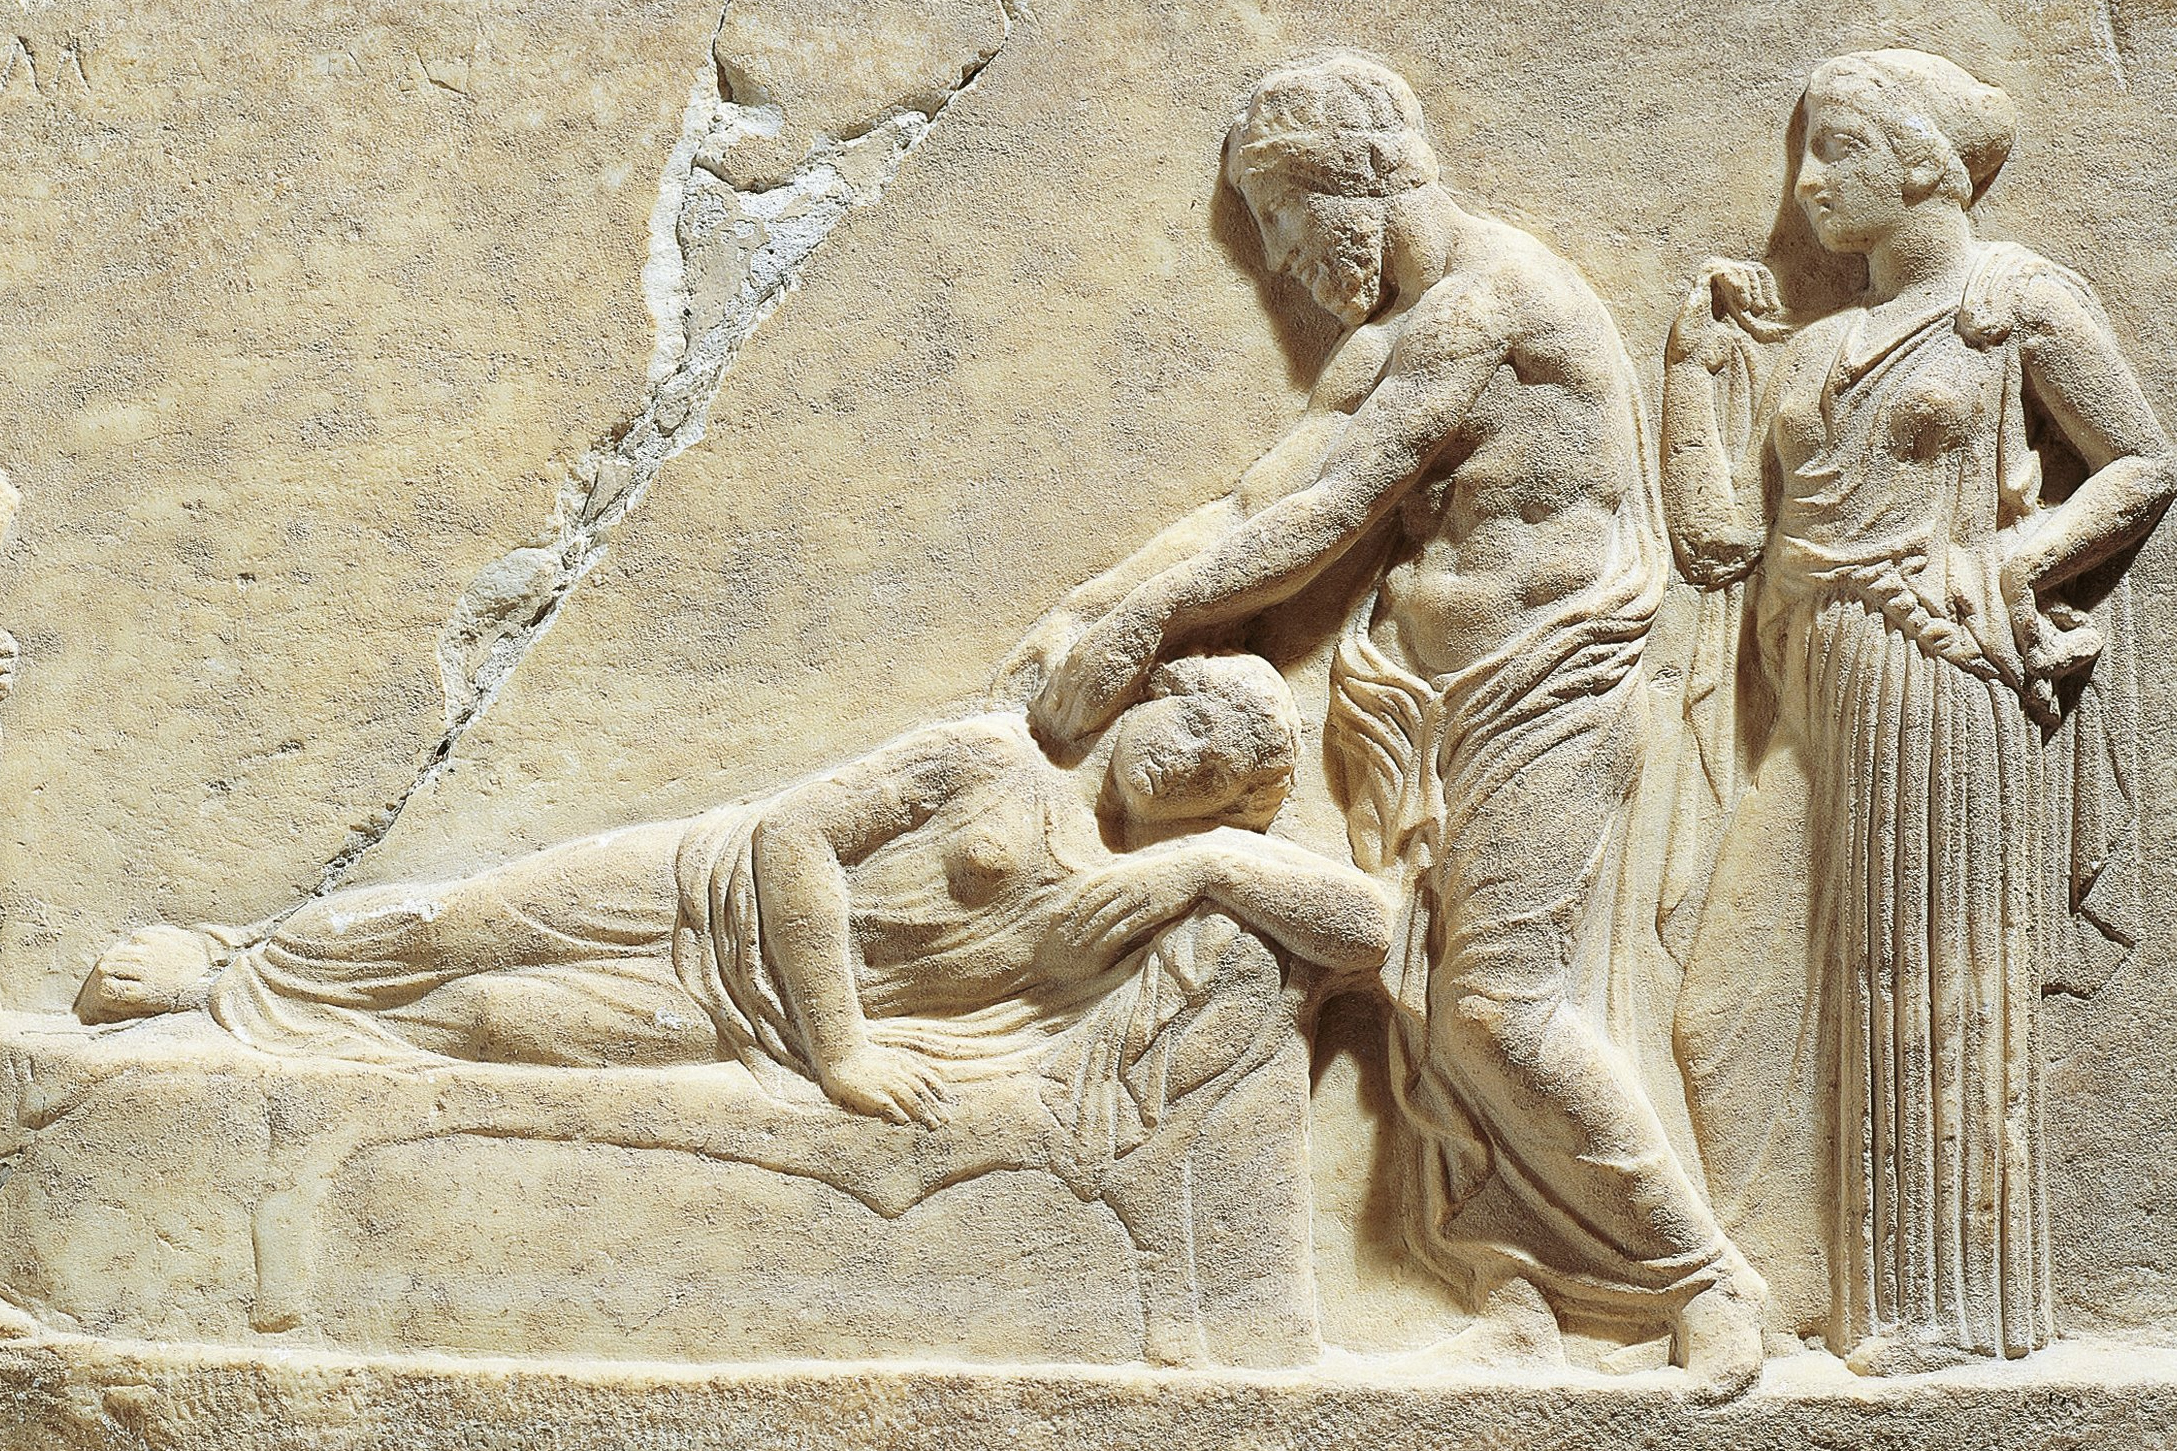 Marble relief depicting Asclepius or Hippocrates treating ill woman, from Greece, Il Pireo, Archaeological Museum, 5th Century B.C.